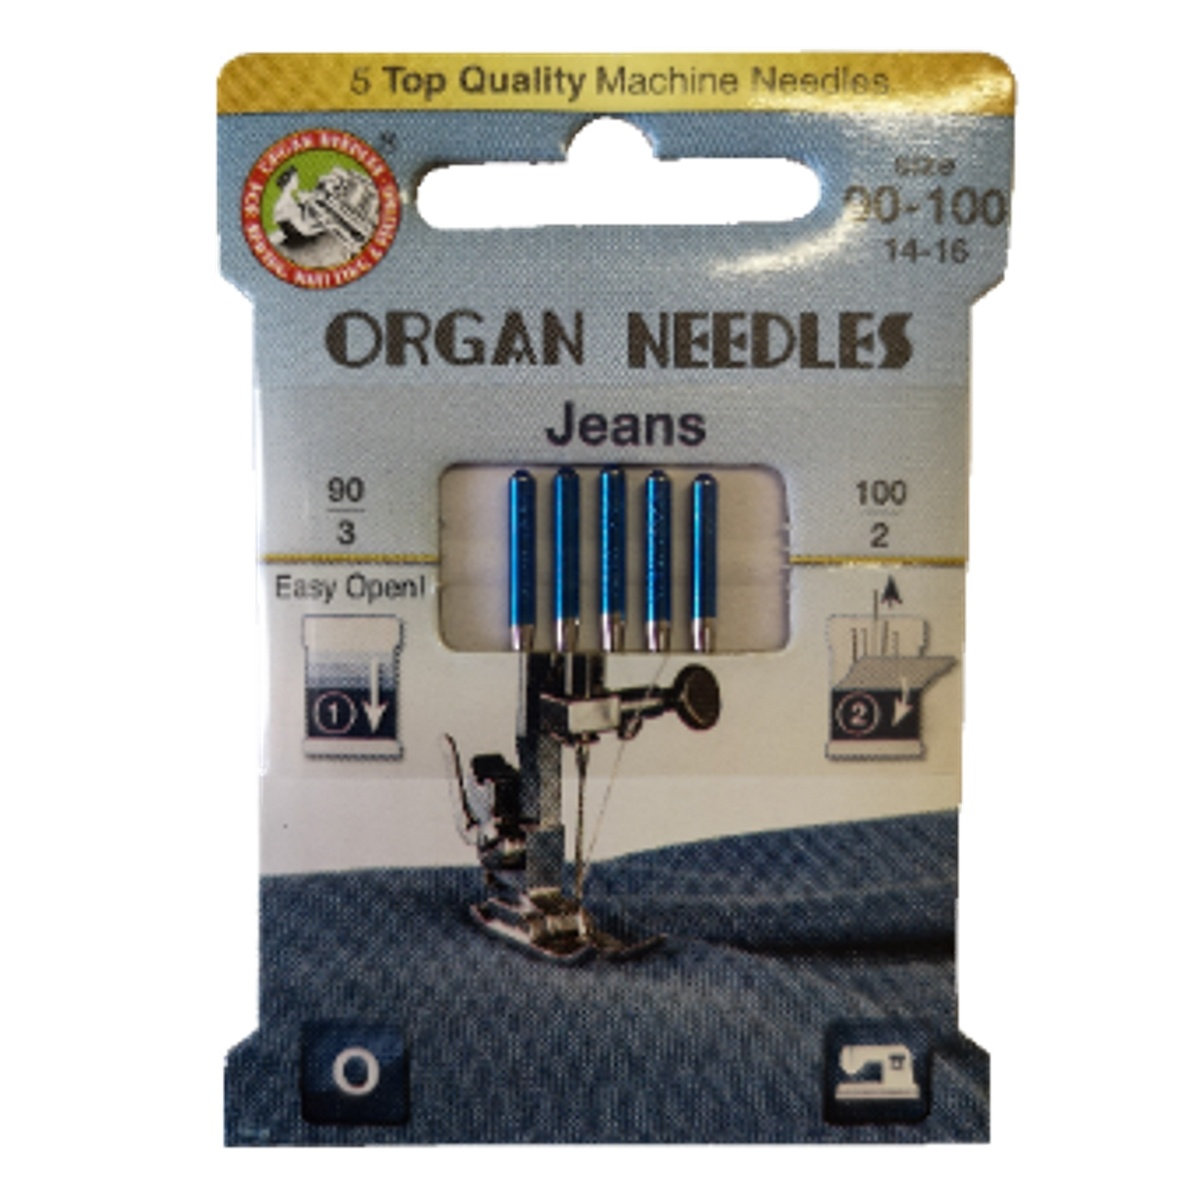 Jehly Organ Needles Jeans 90-100